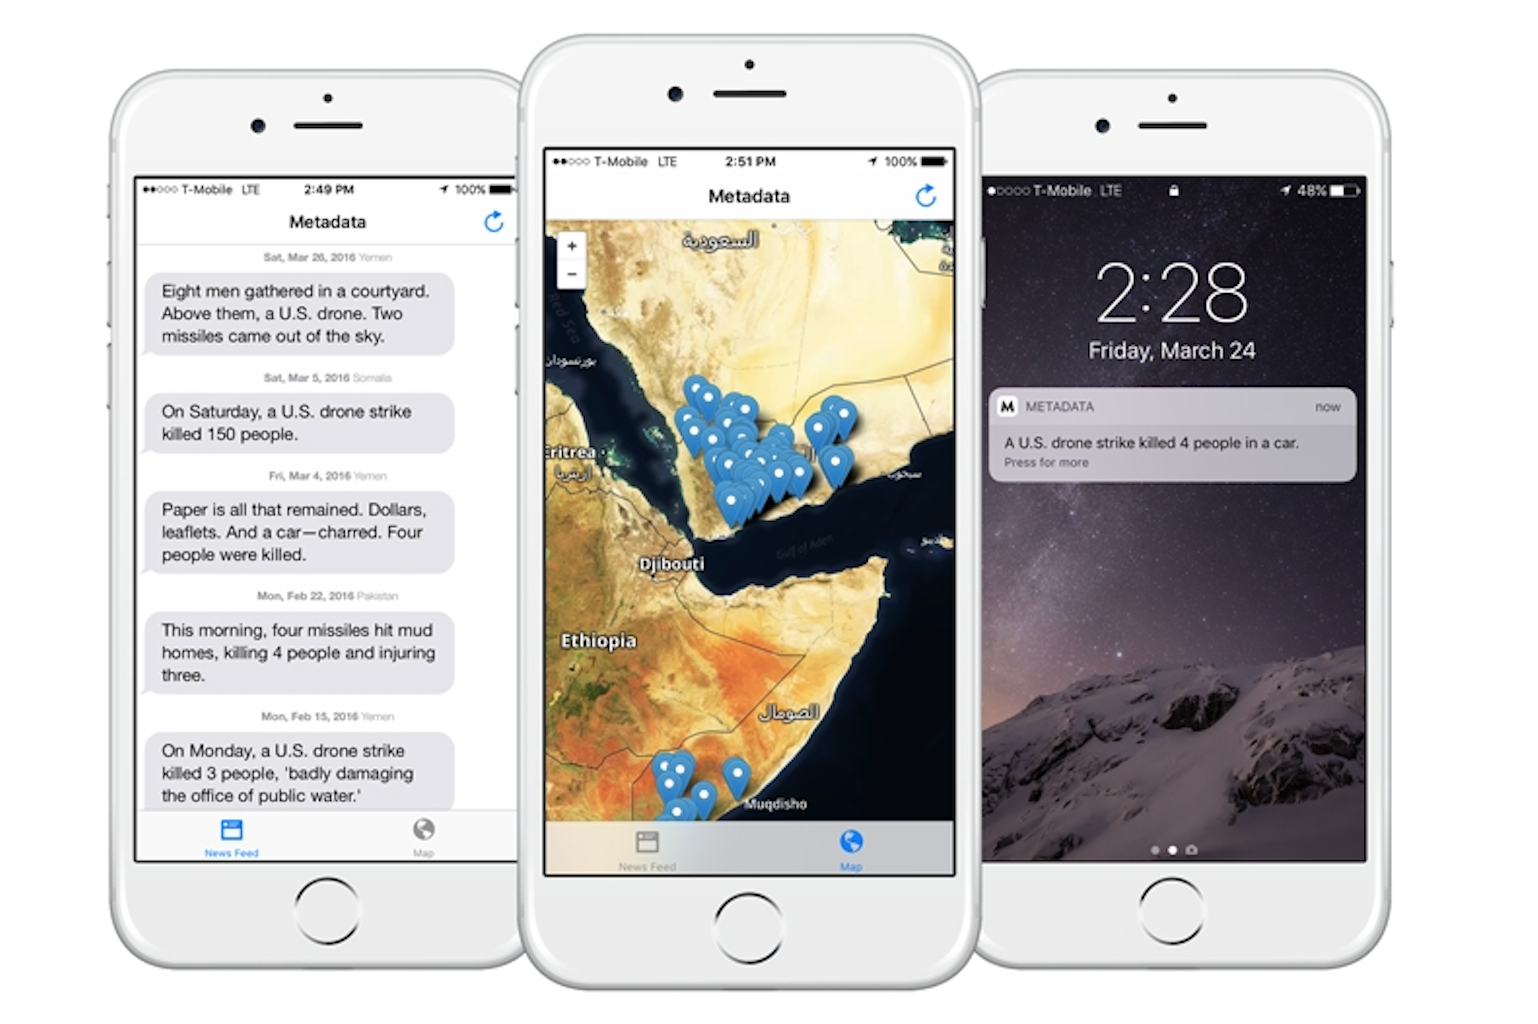 After 12 Rejections, Apple Accepts U.S. Drone Strike Tracking App